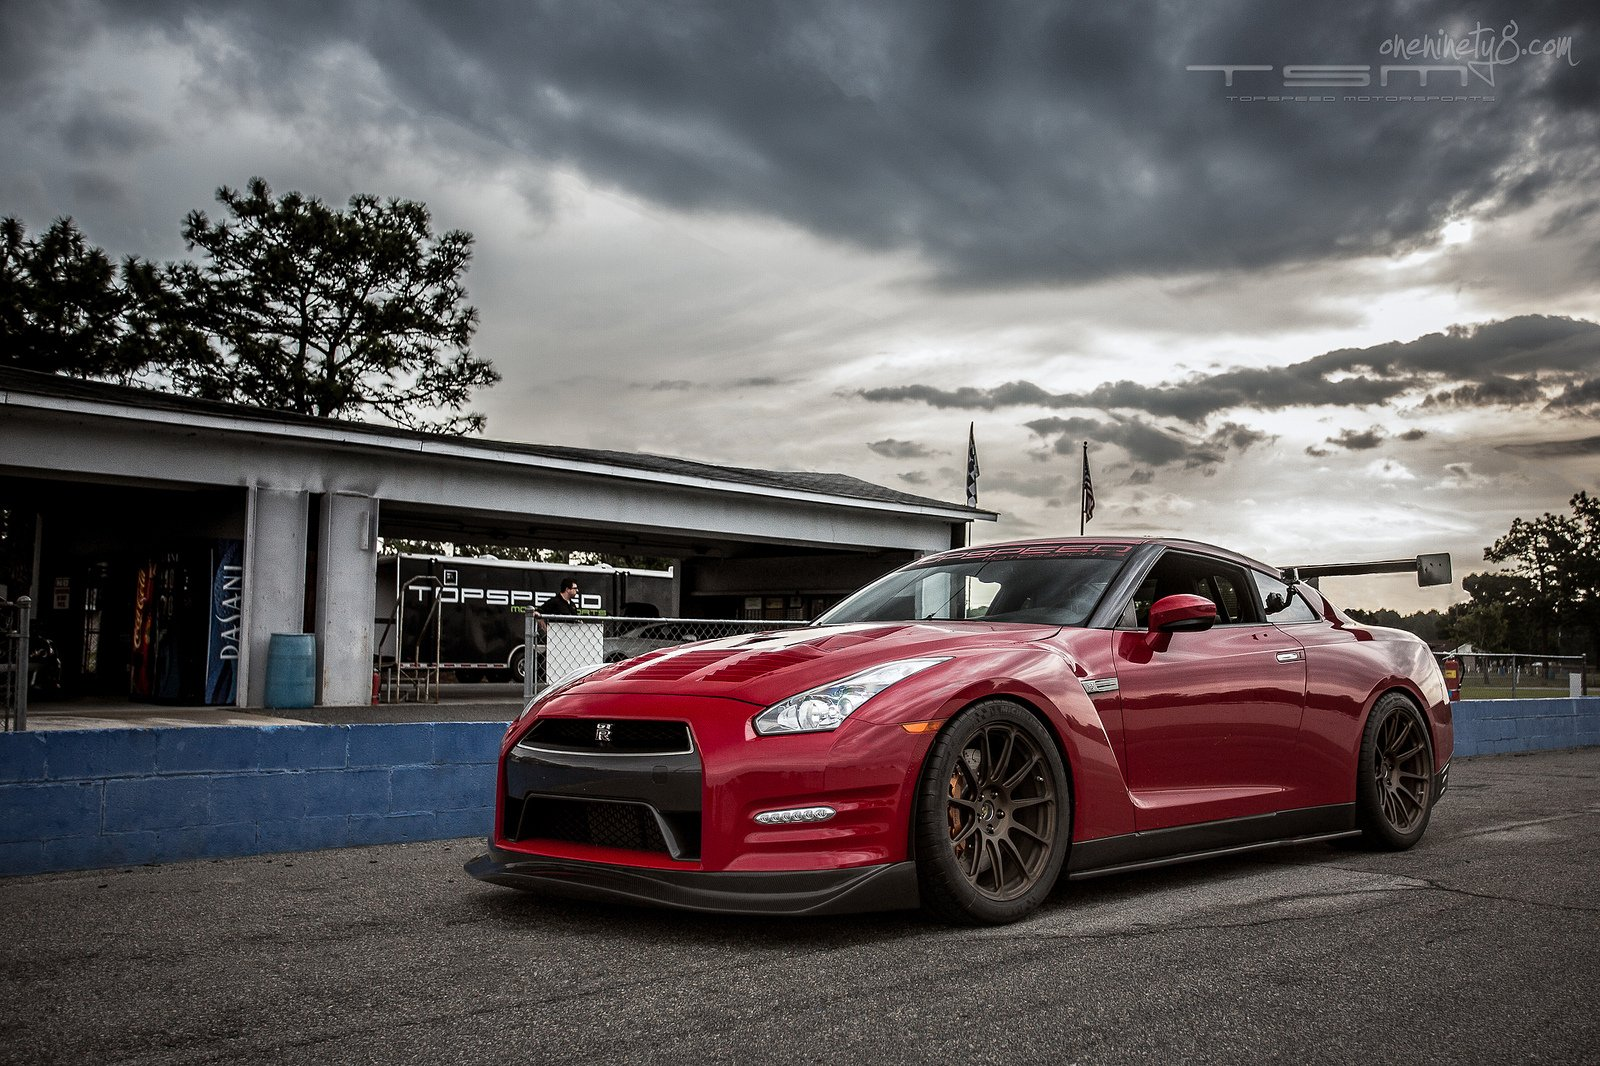 GT-R nismo Nissan R35 TUNING Supercar coupe japan cars red